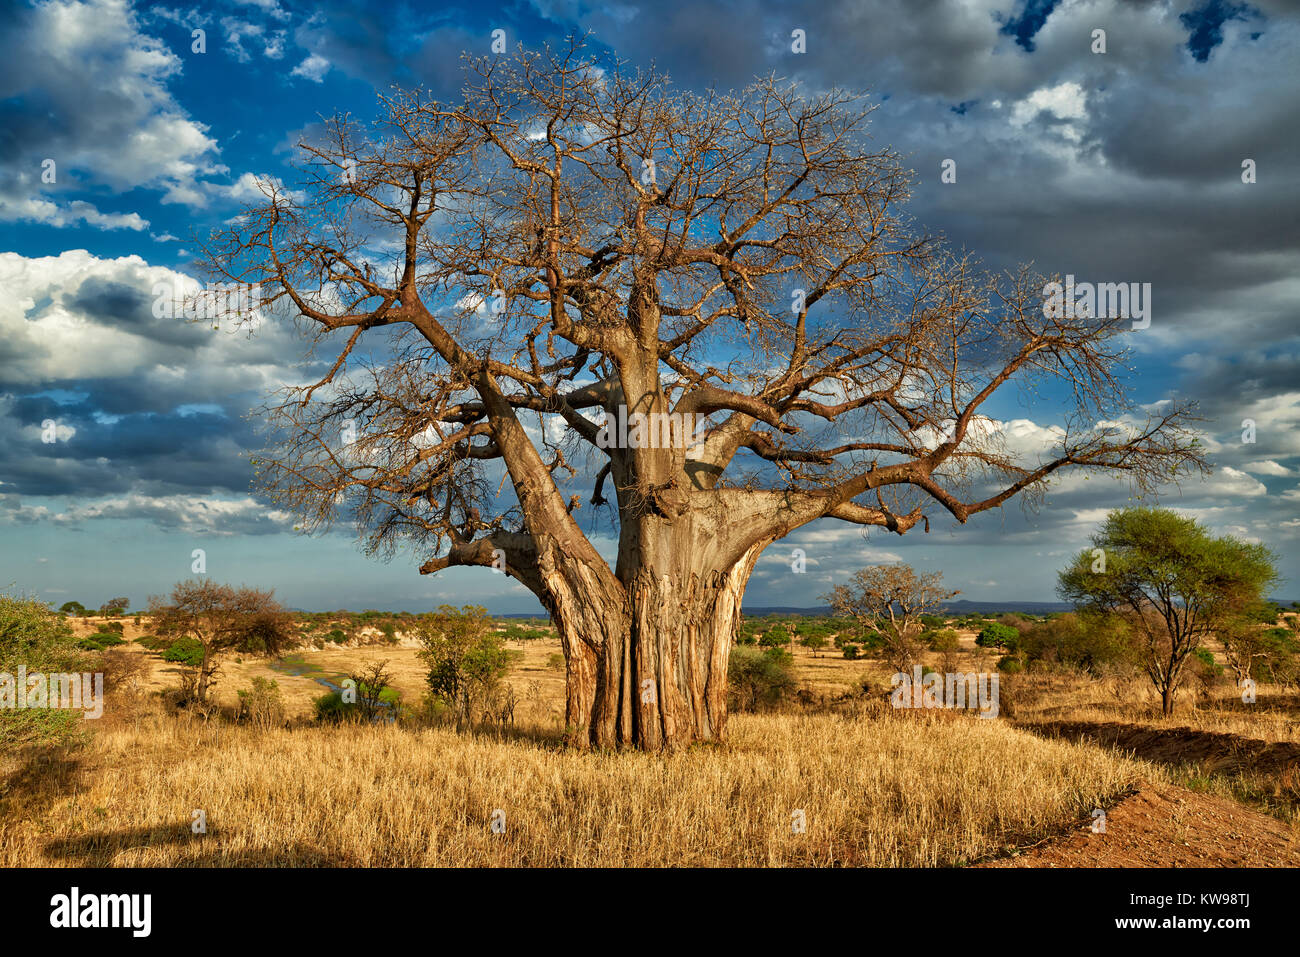 Baobab tree (Adansonia digitata) in landscape of  Tarangire National Park, Tanzania, Africa - Stock Image